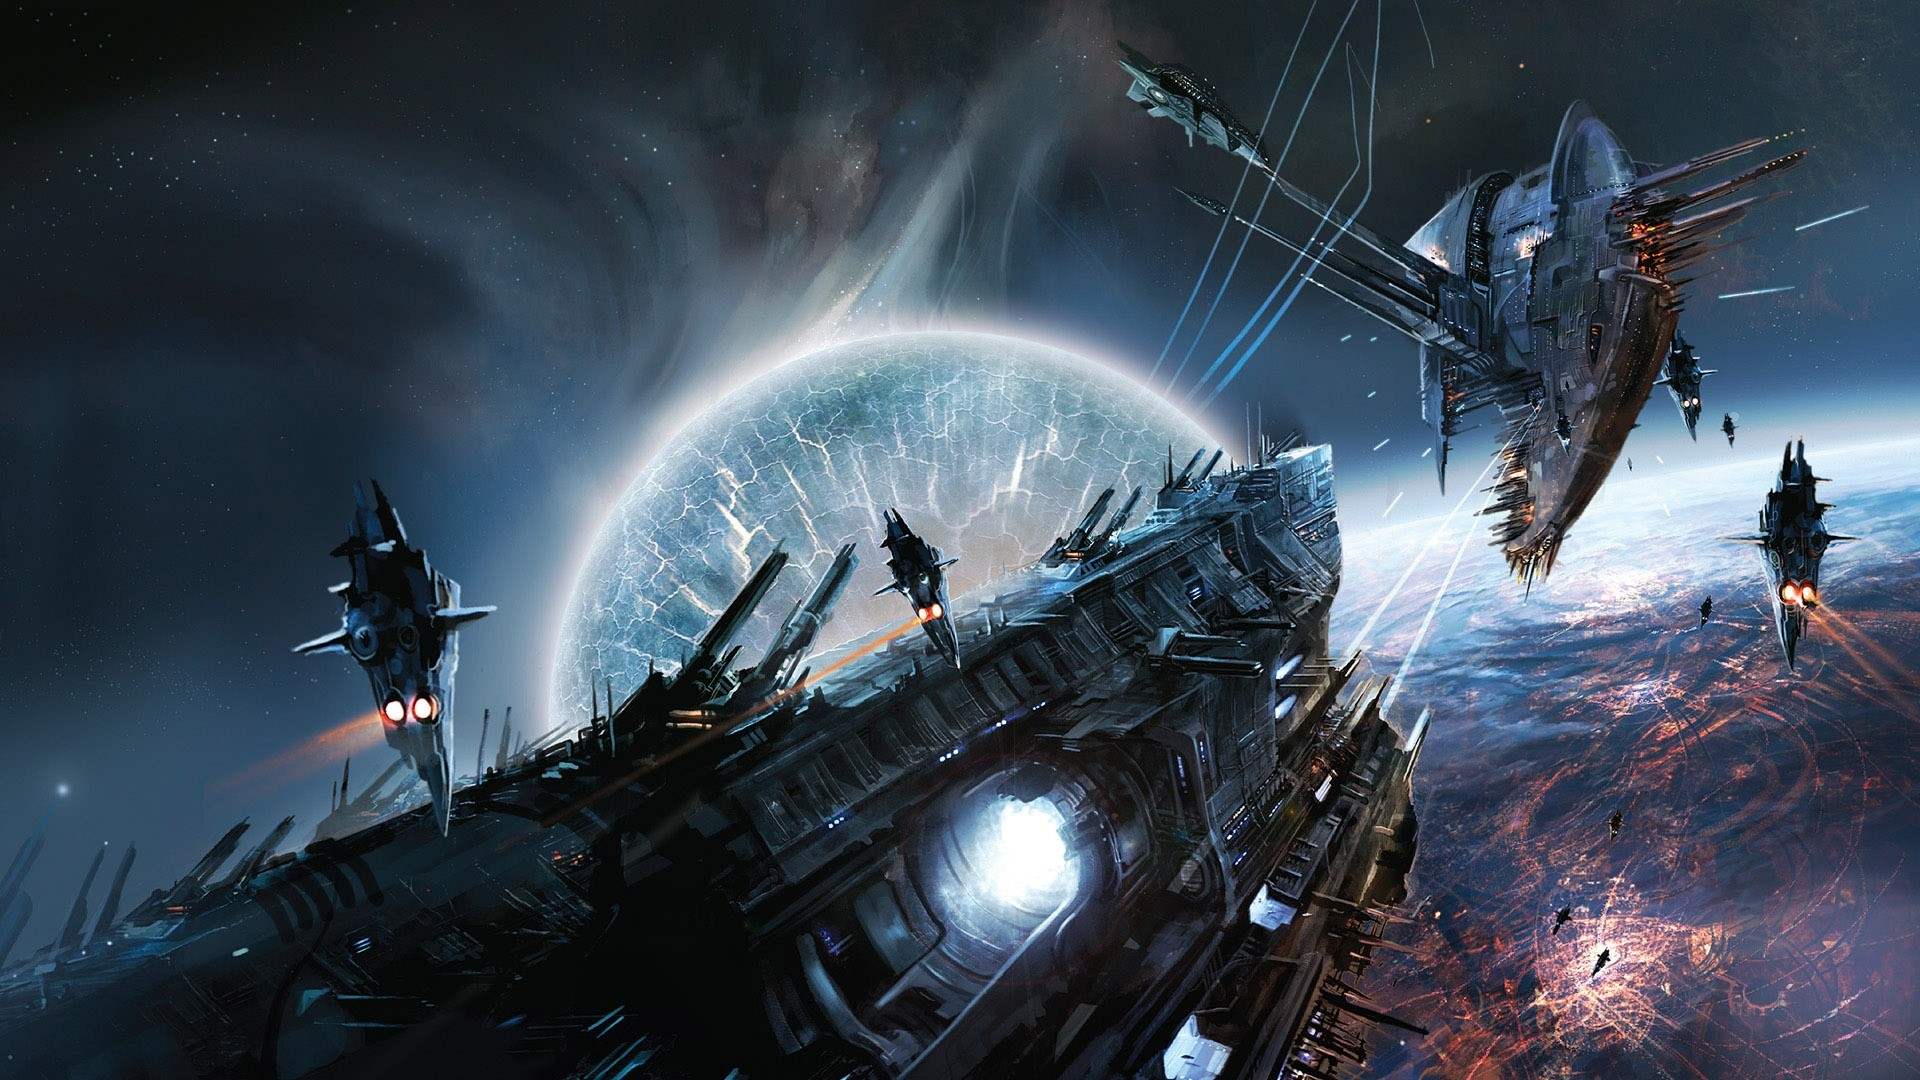 Space War Game Scene Wallpapers